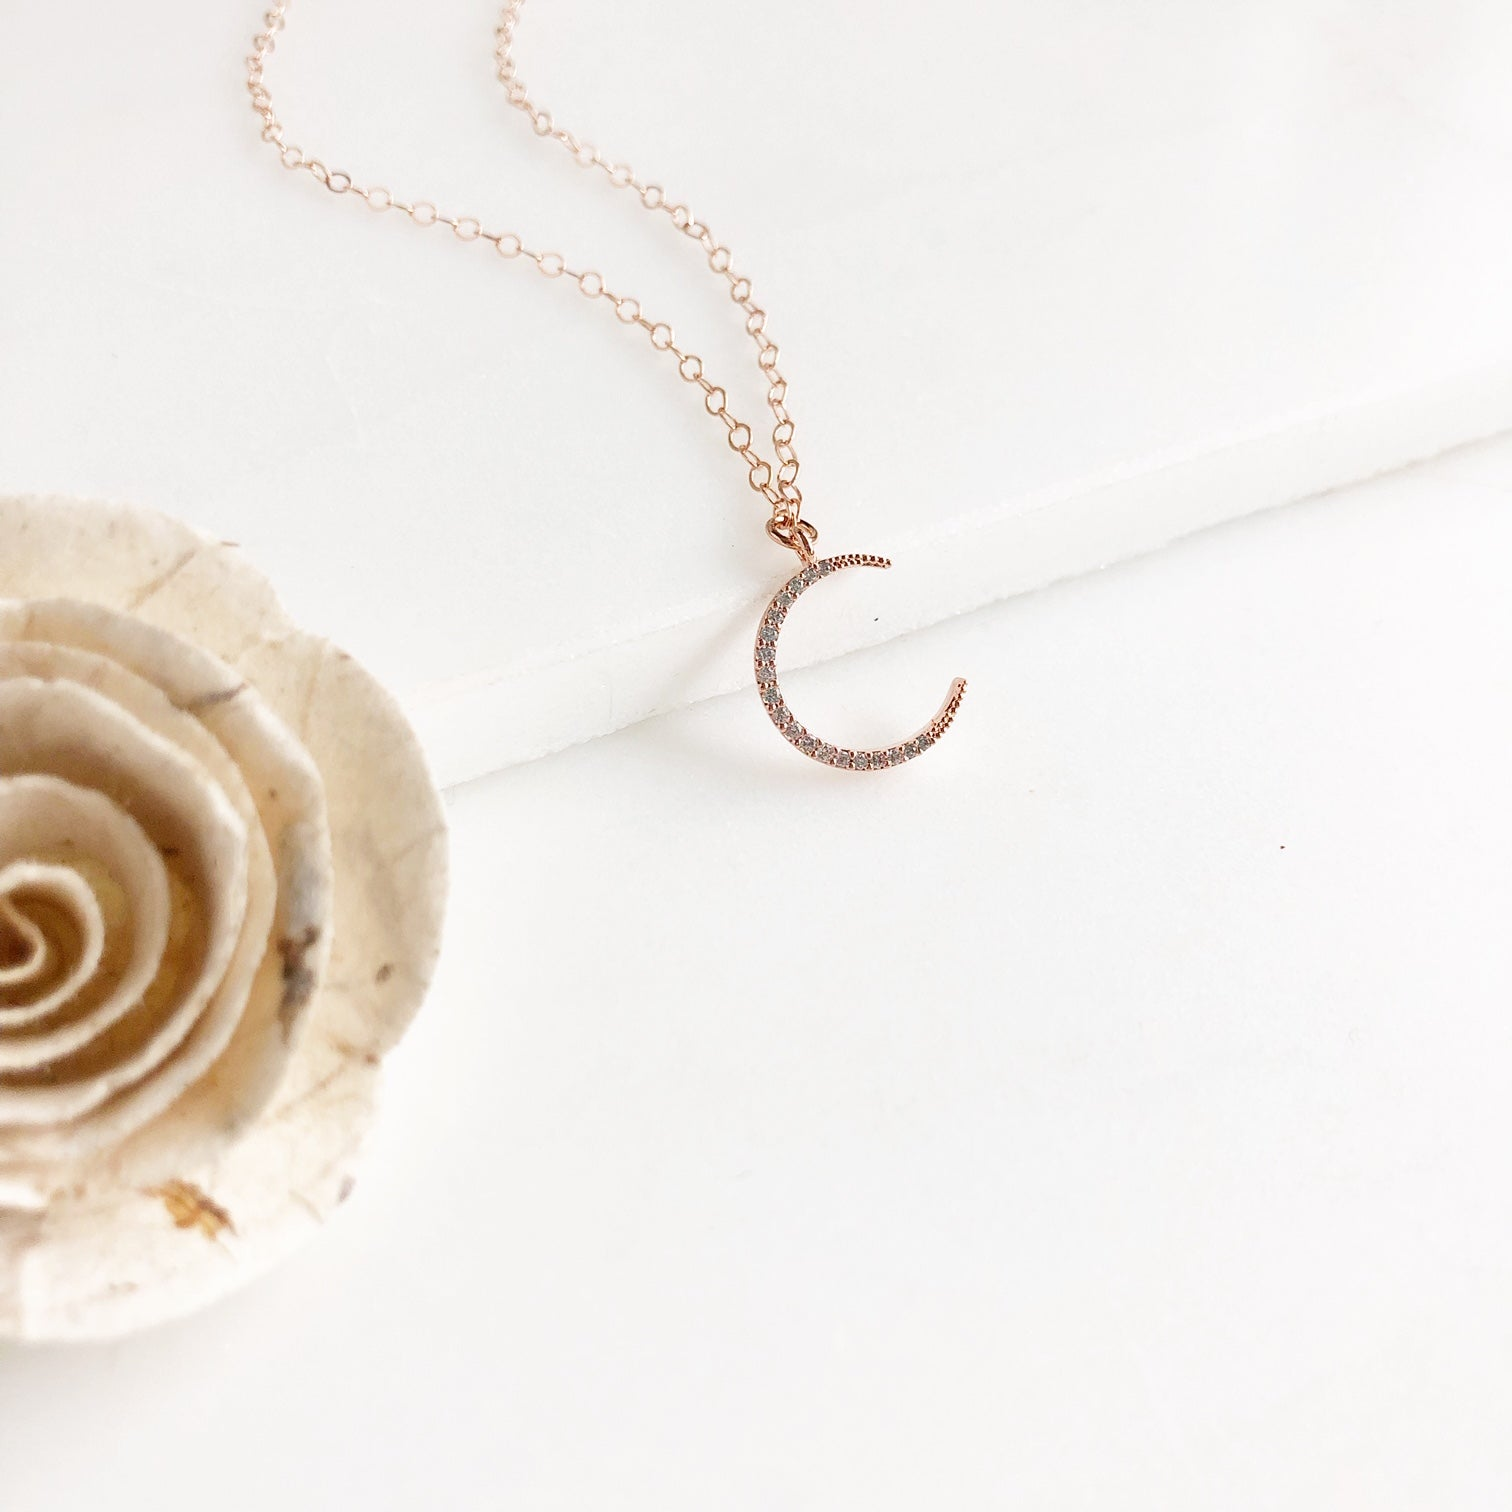 Rose Gold Cubic Zirconia Crescent Moon Necklace.